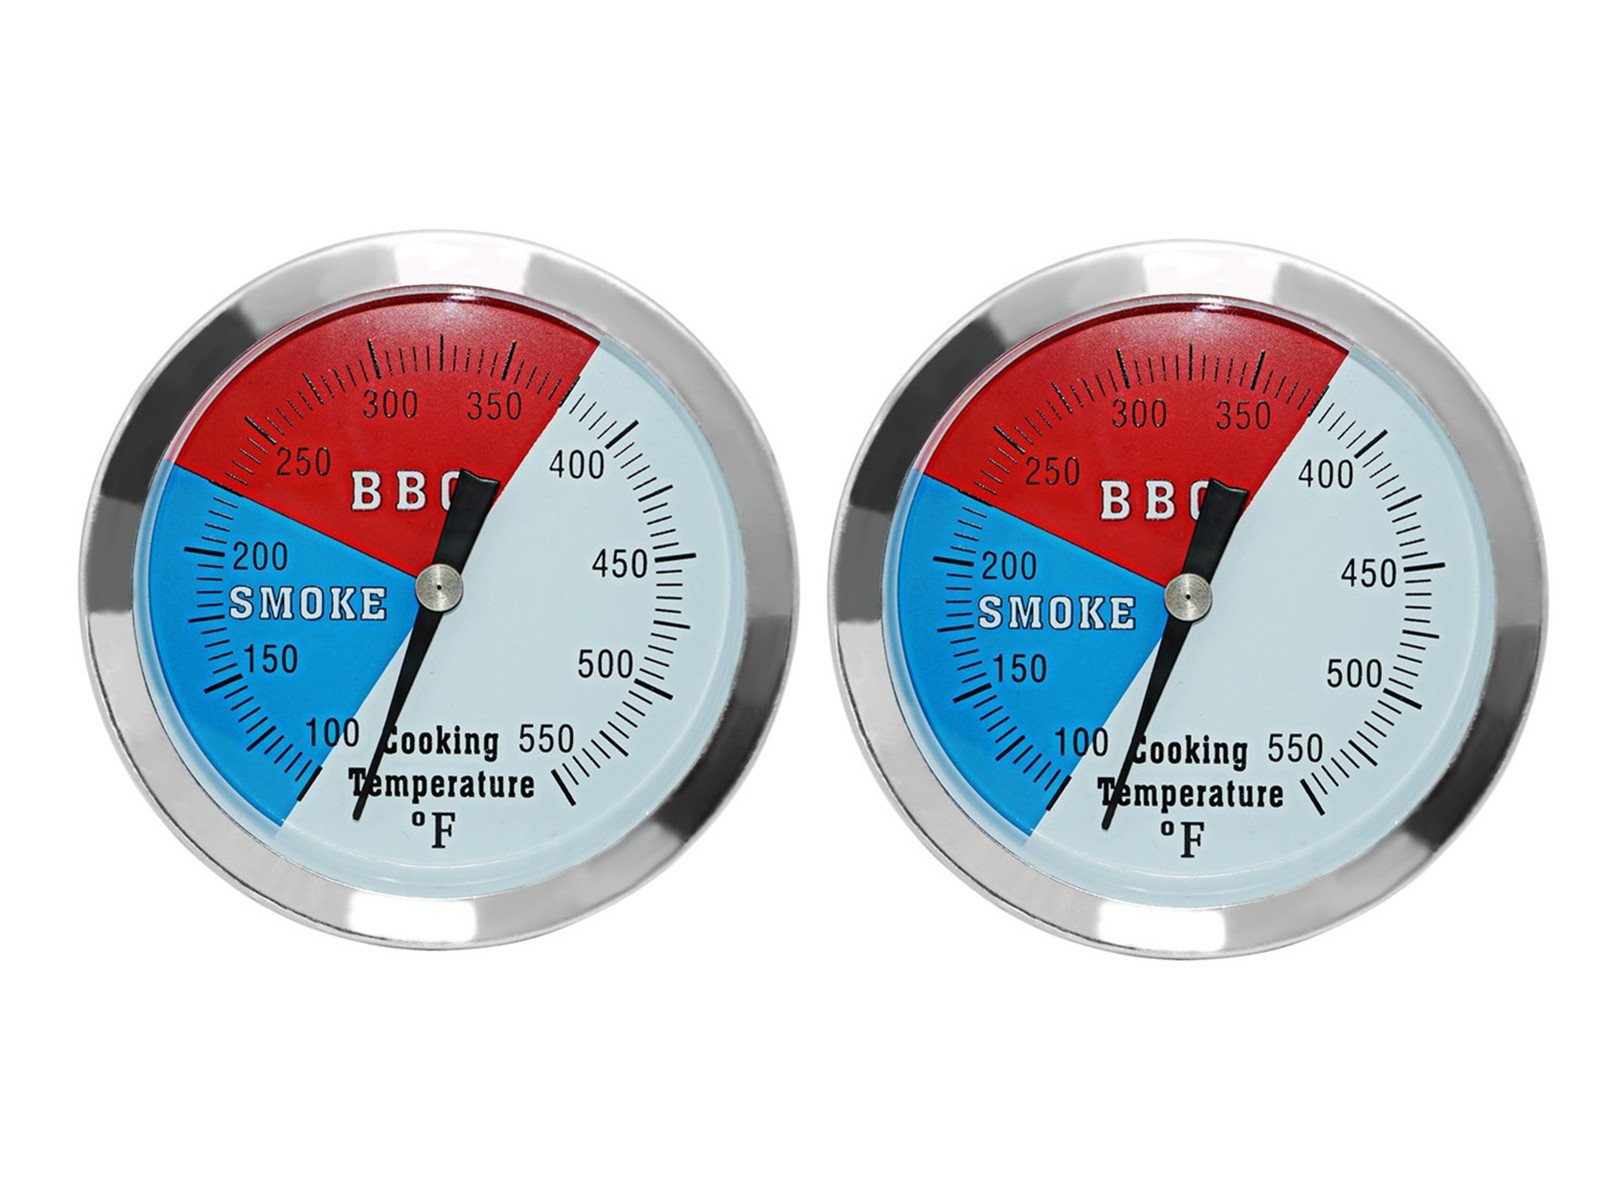 DOZYANT 3 1/8 Inch Barbecue Charcoal Grill Smoker Temperature Gauge Pit BBQ Thermometer Fahrenheit and Heat Indicator for Meat Cooking Port Lamb Beef, Stainless Steel Temp Gauge, 2-Pack by DOZYANT